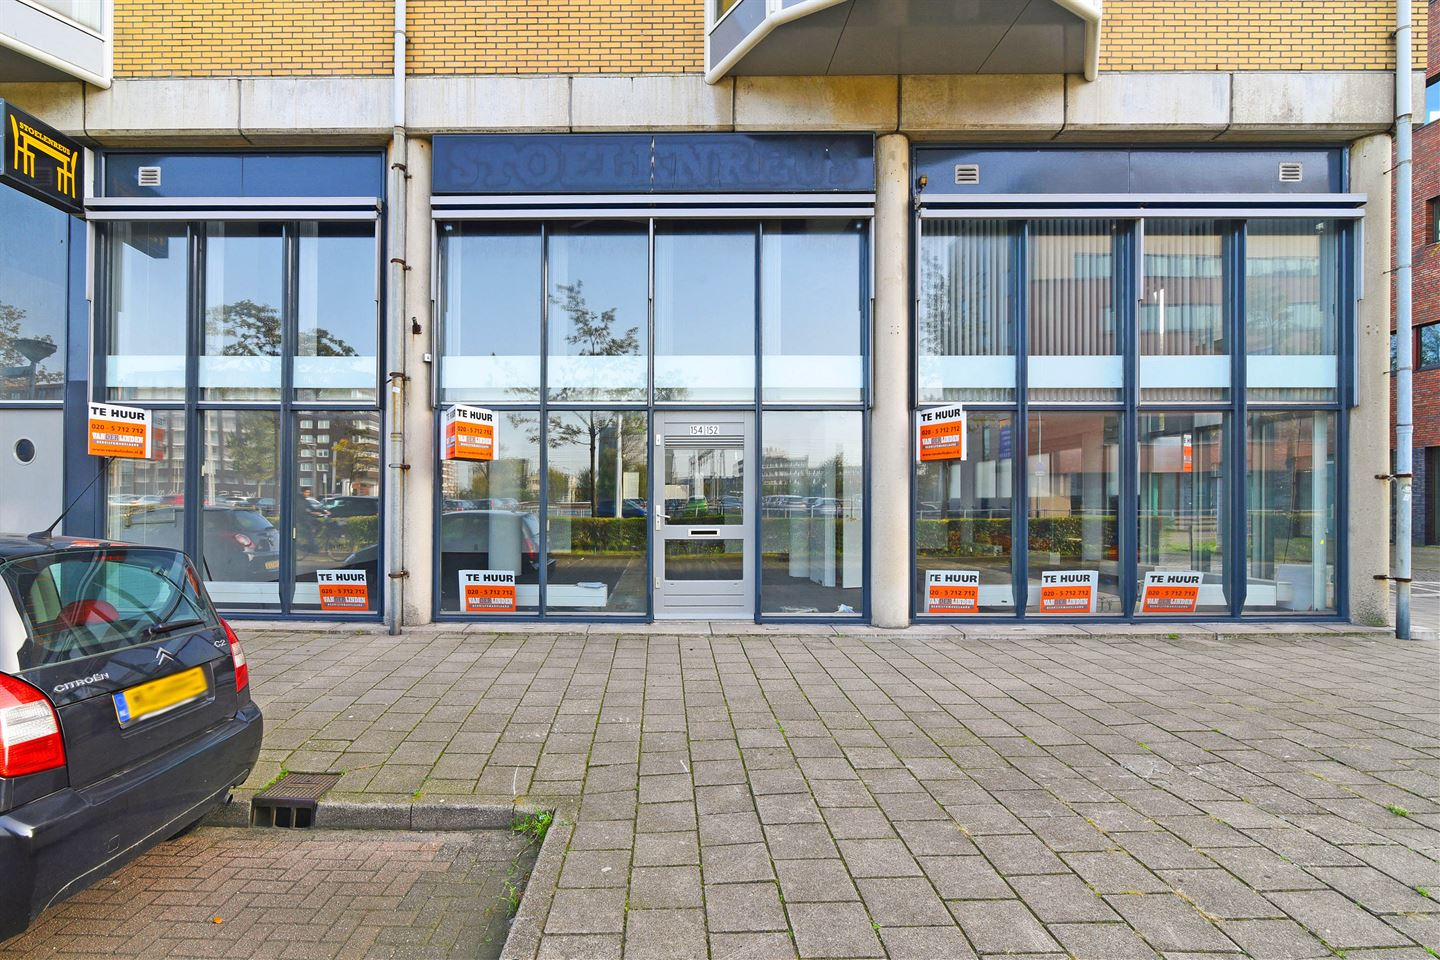 Badkamer Outlet Zaandam : Outlet zaandam year of opening of the first mcdonald s outlet by